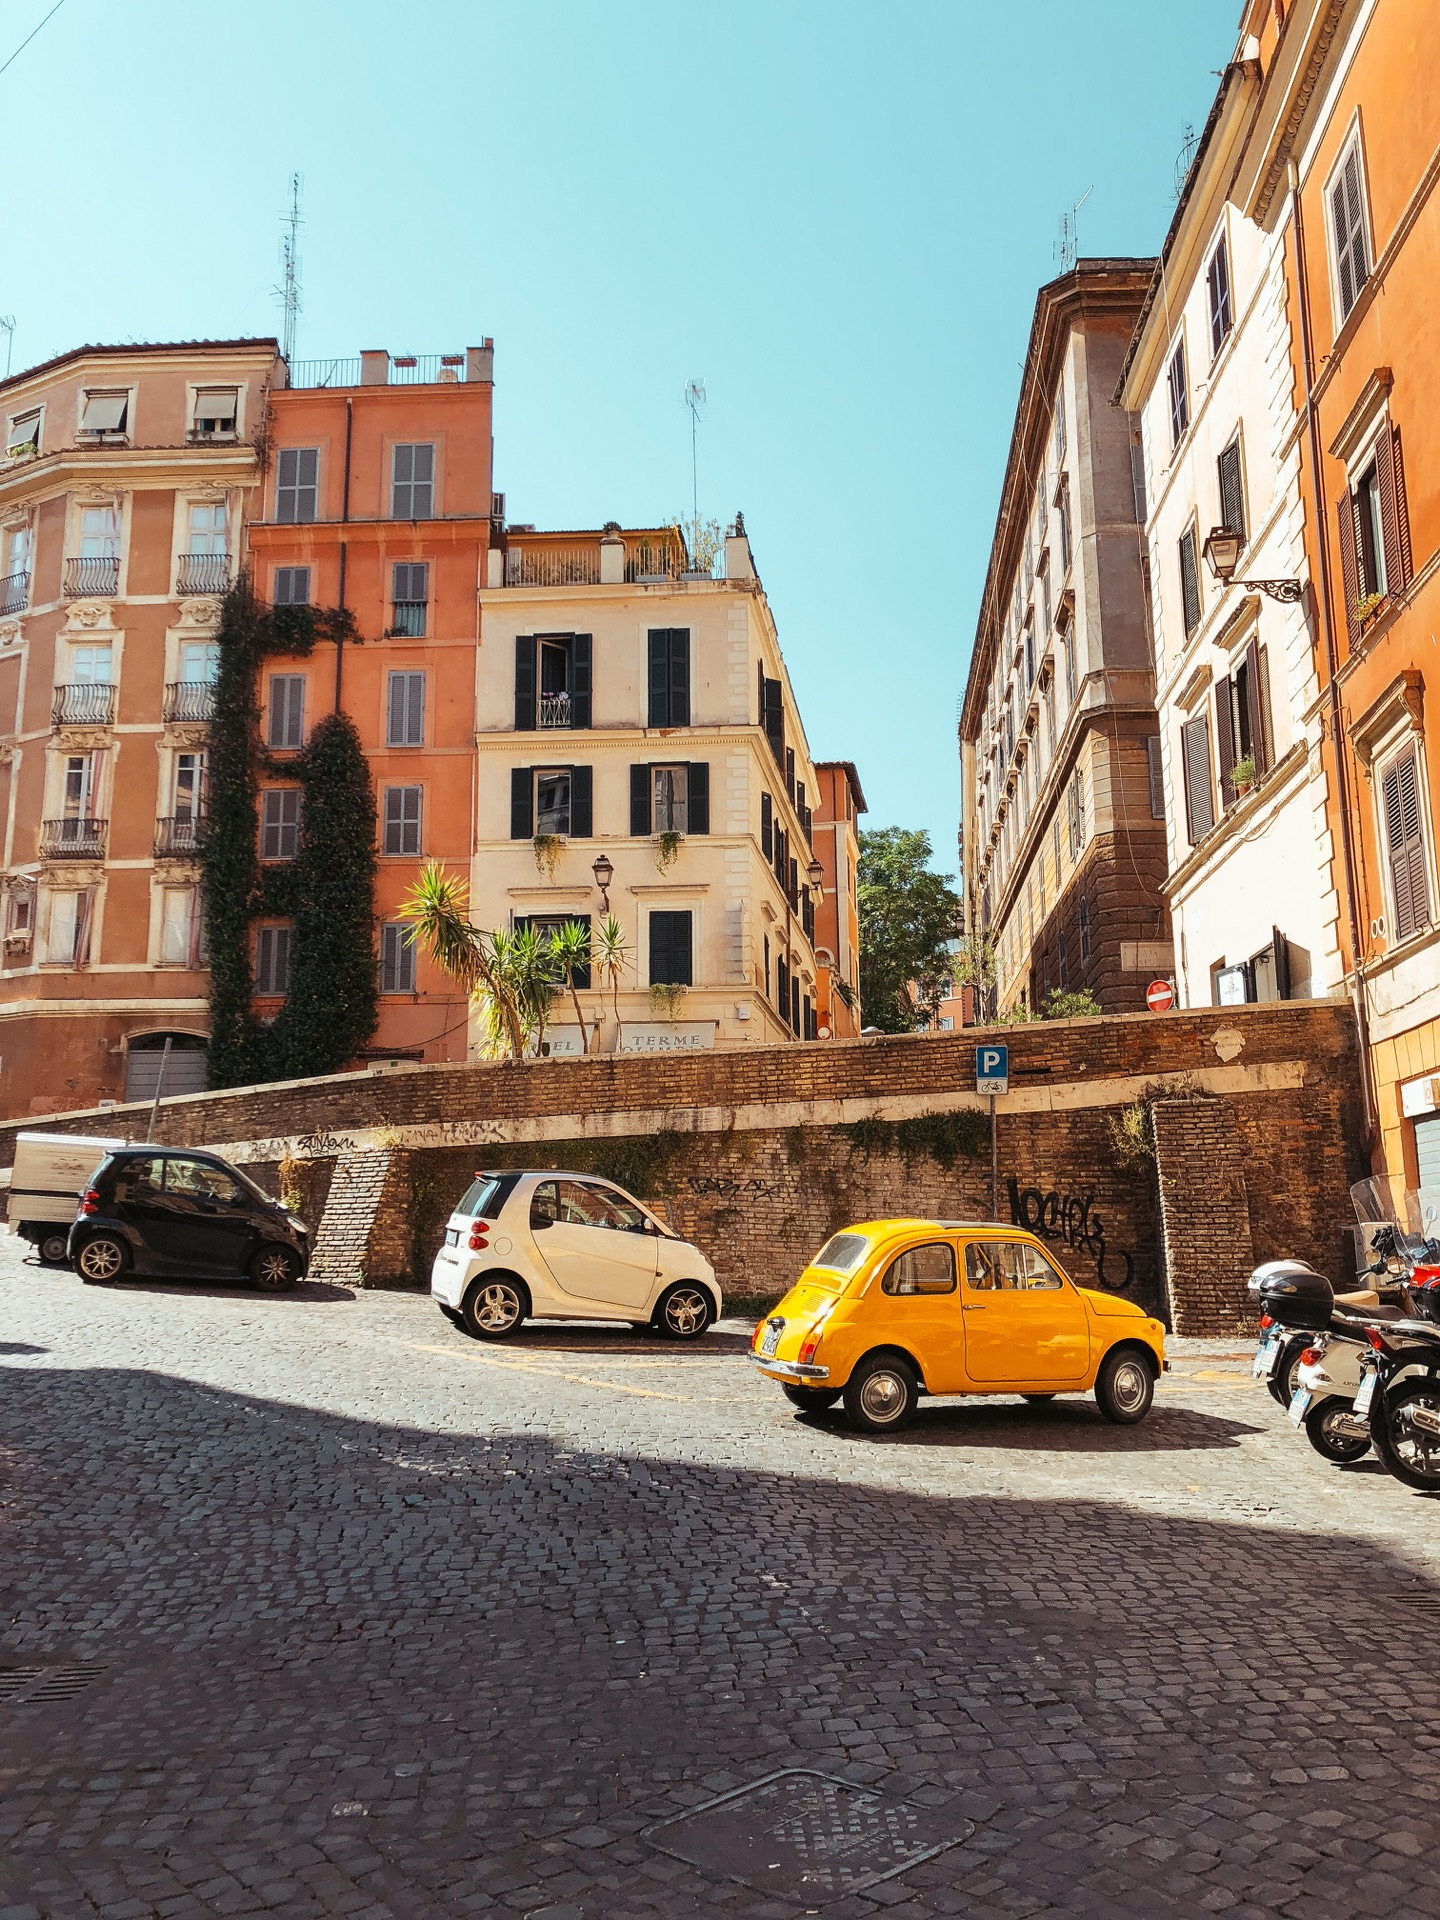 must-see sights and cities in italy to visit